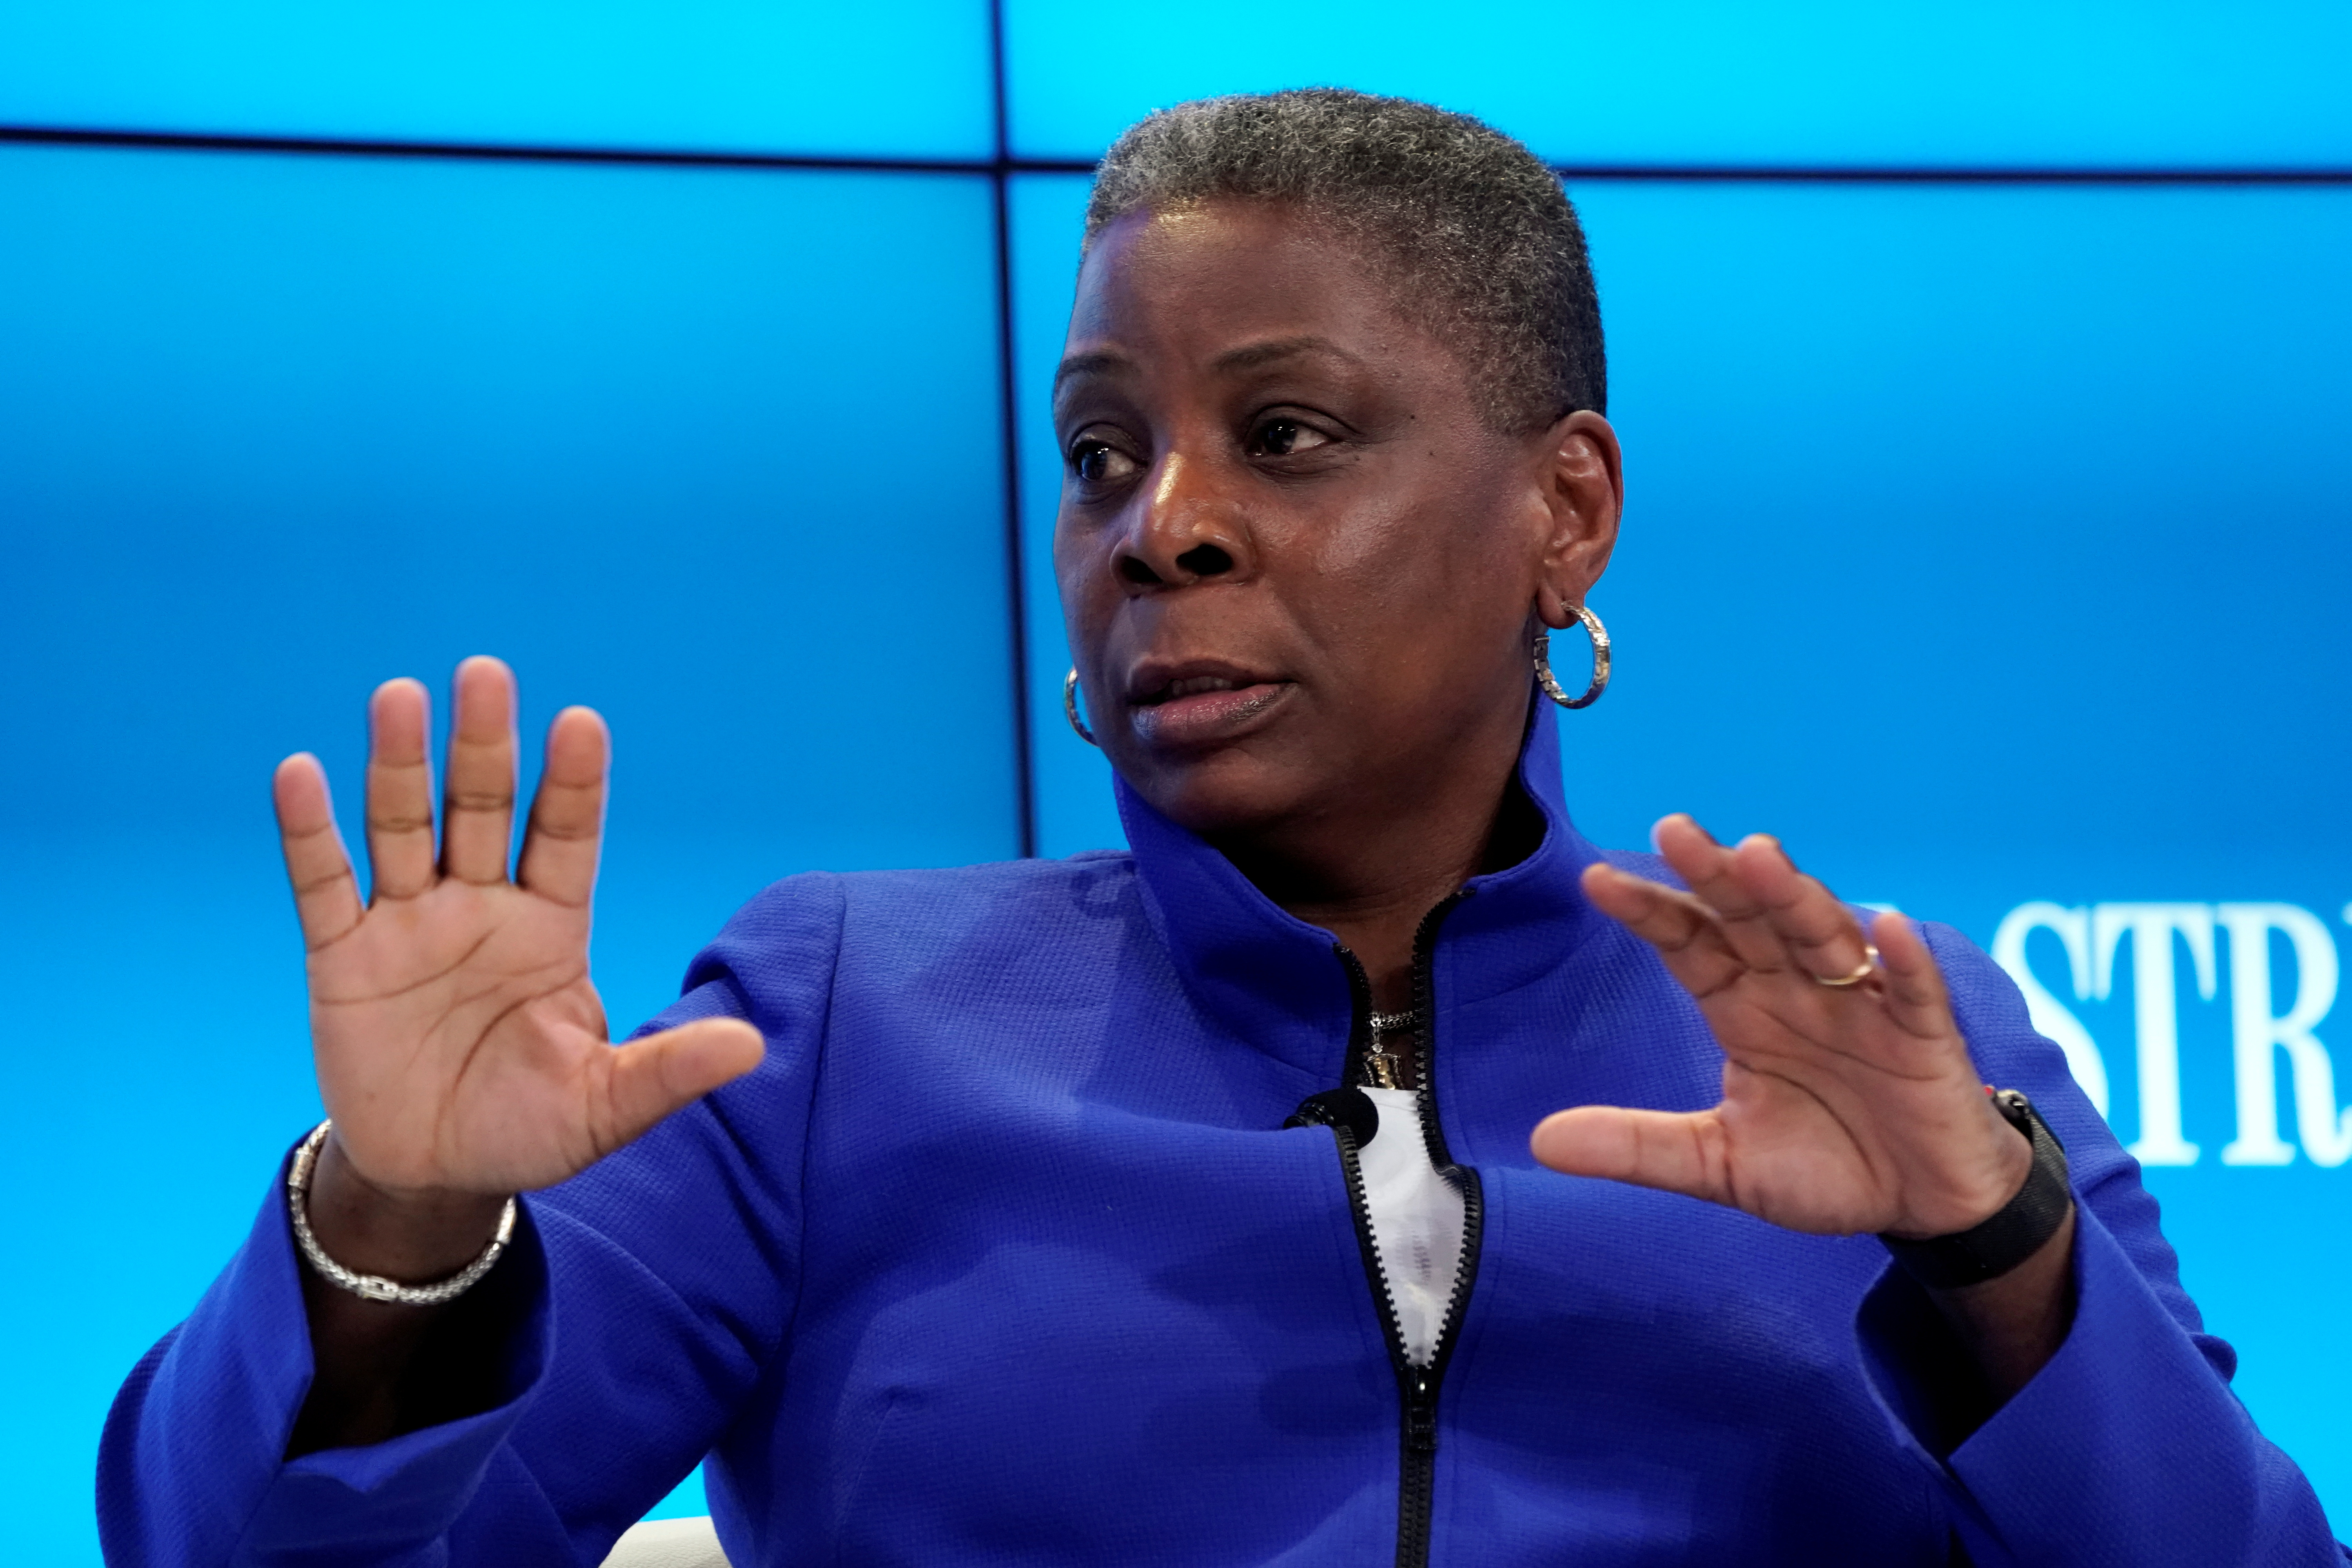 Ursula Burns, longtime board member of Exxon Mobil Corp and former CEO of Xerox, gestures during the World Economic Forum (WEF) annual meeting in Davos, Switzerland January 25, 2018. REUTERS/Denis Balibouse/File Photo